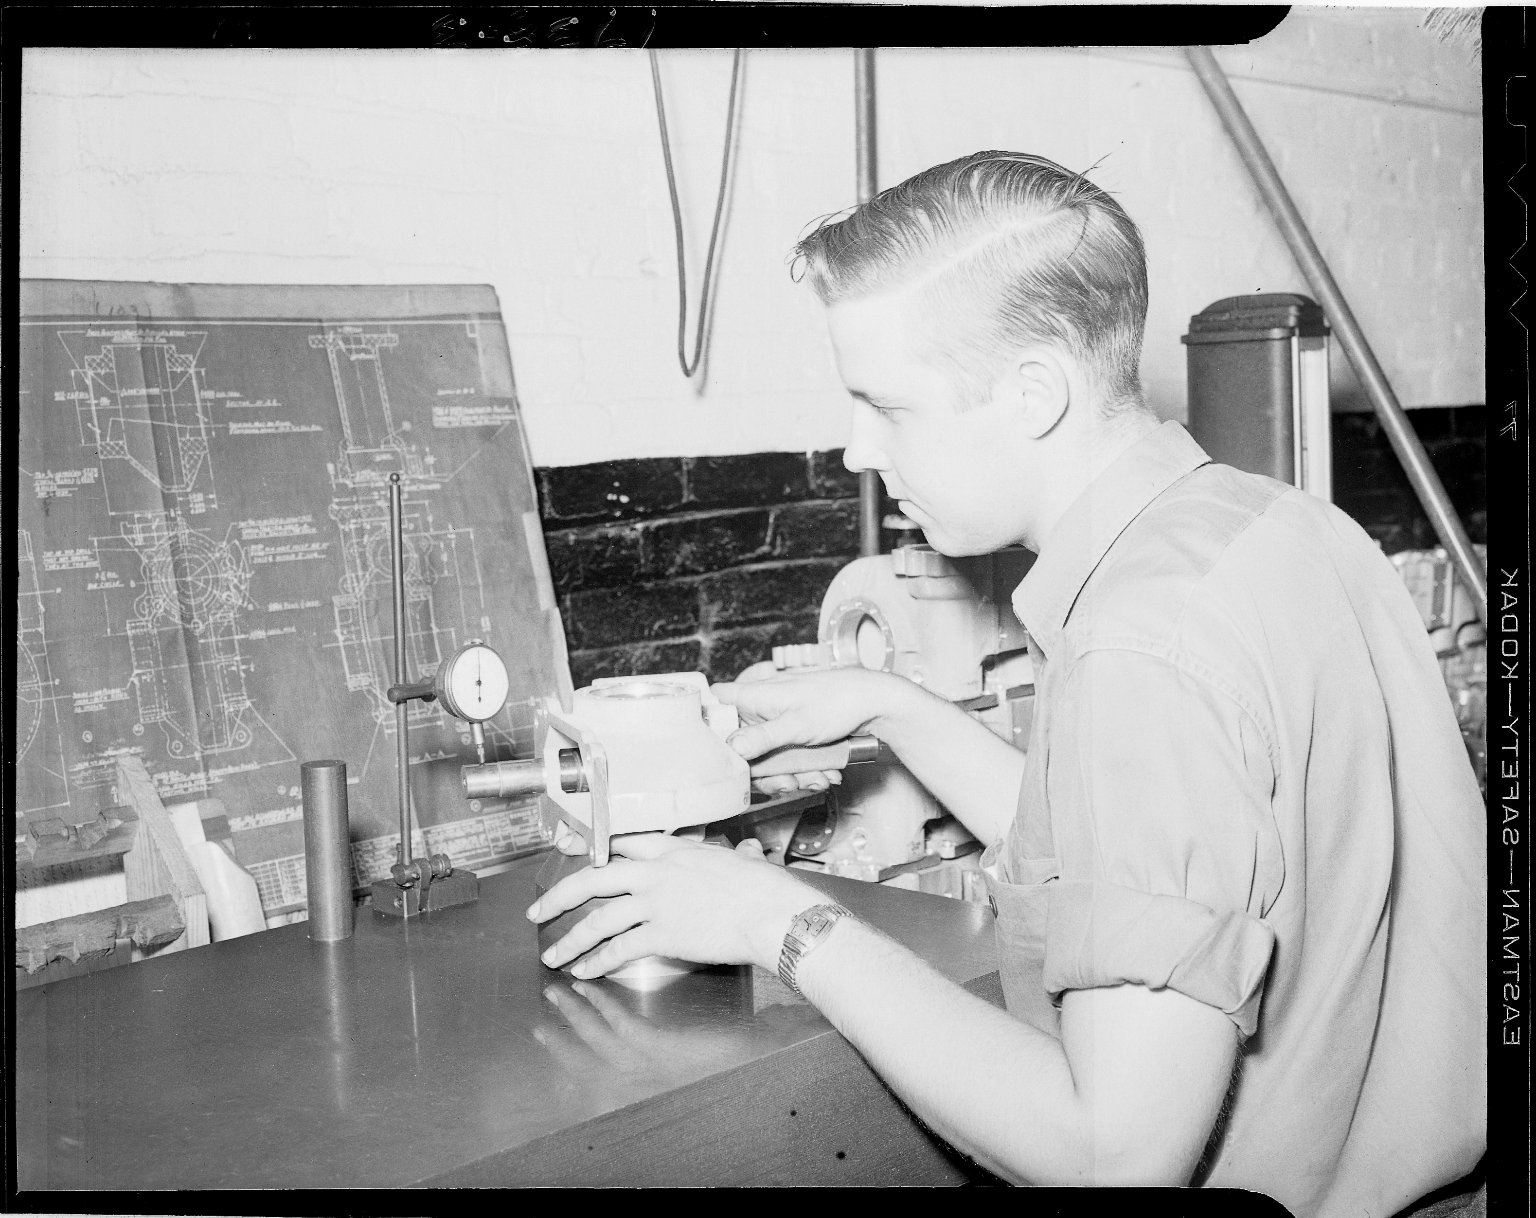 Technician checking industrial part to specification drawing